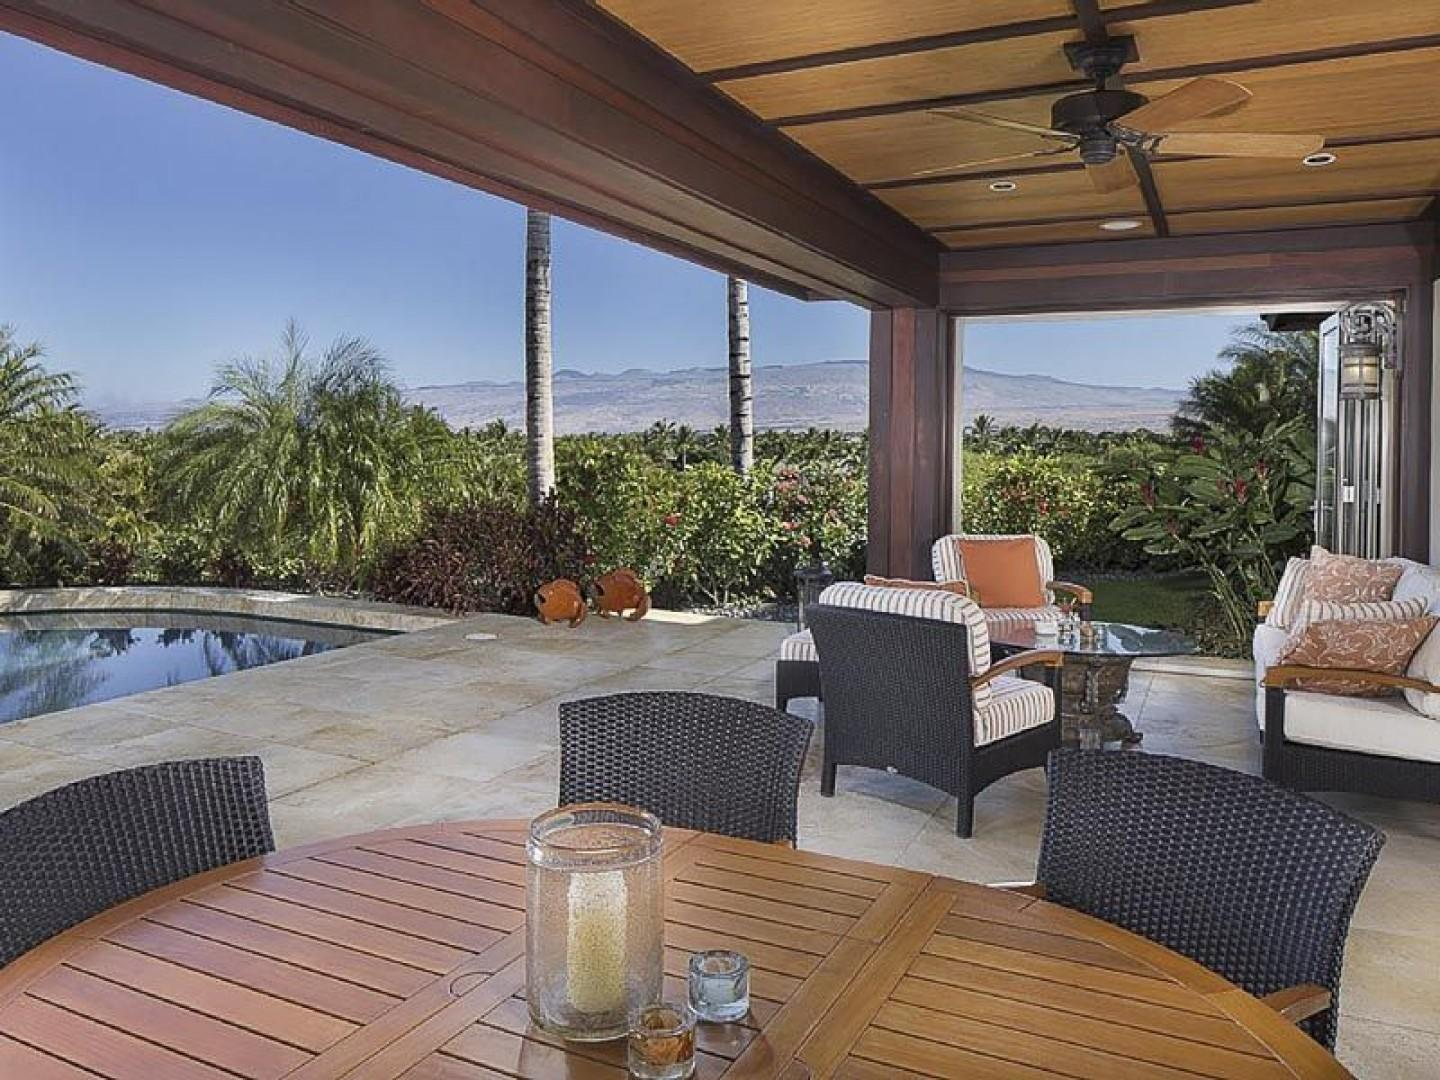 Outdoor Dining Area and Cabana